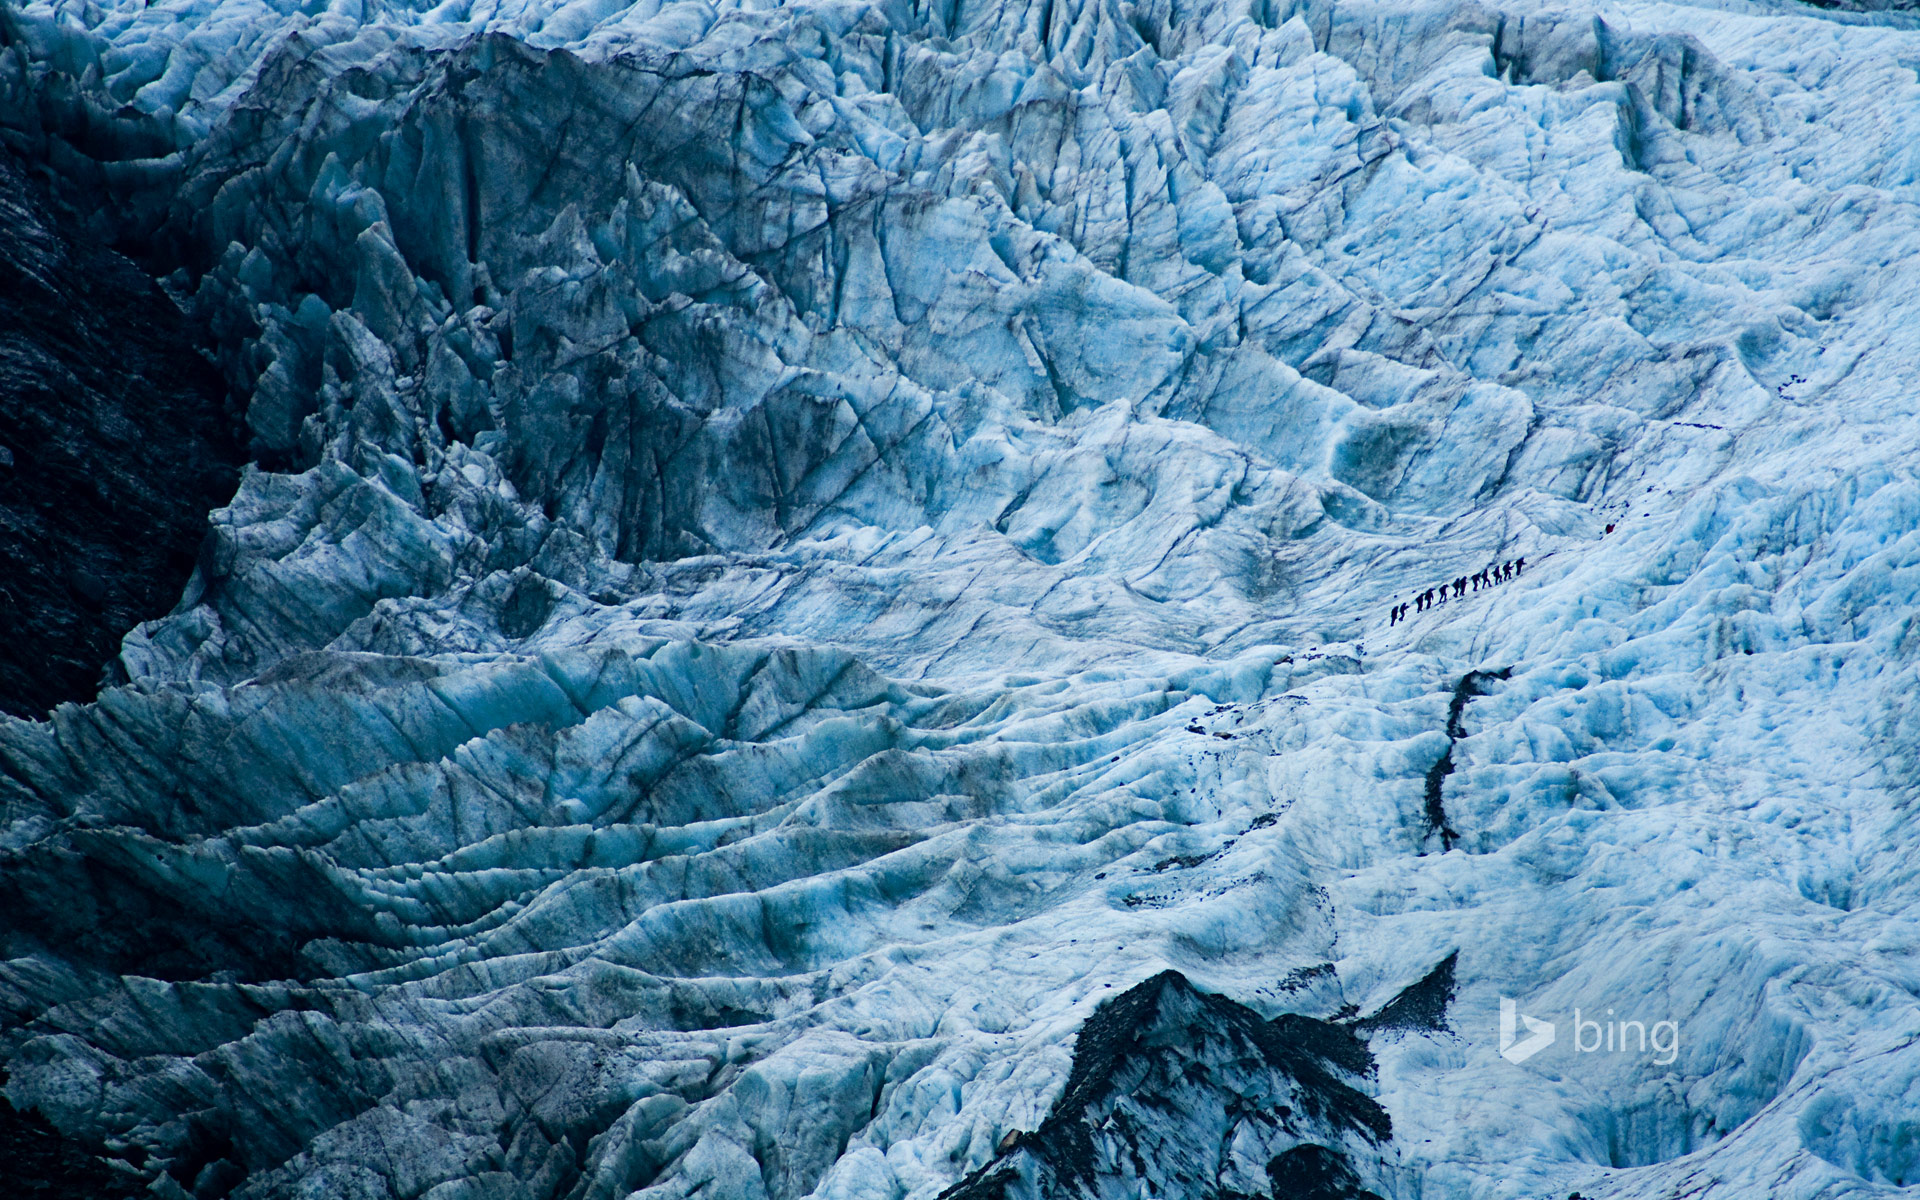 Hikers on Franz Josef Glacier, New Zealand